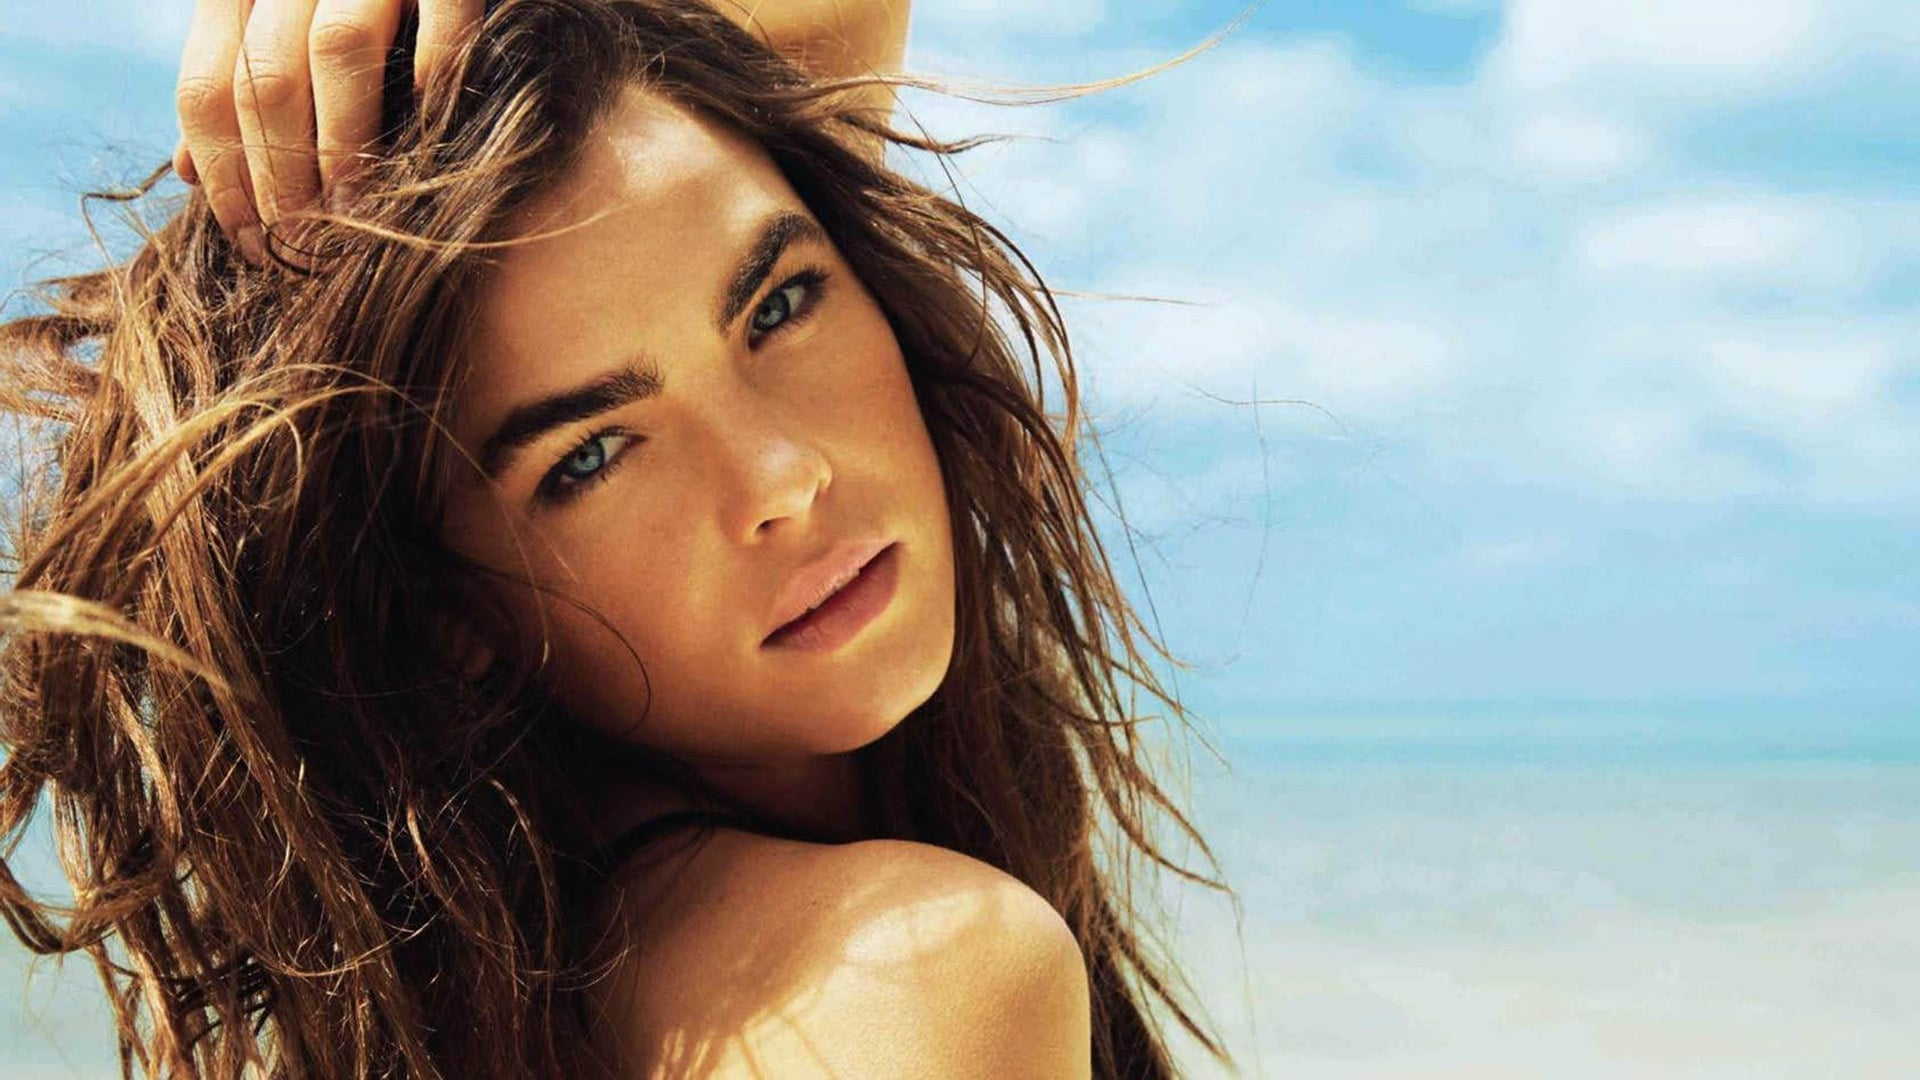 Hd Wallpapers Of New Audi Cars Bambi Northwood Blyth Hd Wallpapers Free Donwload